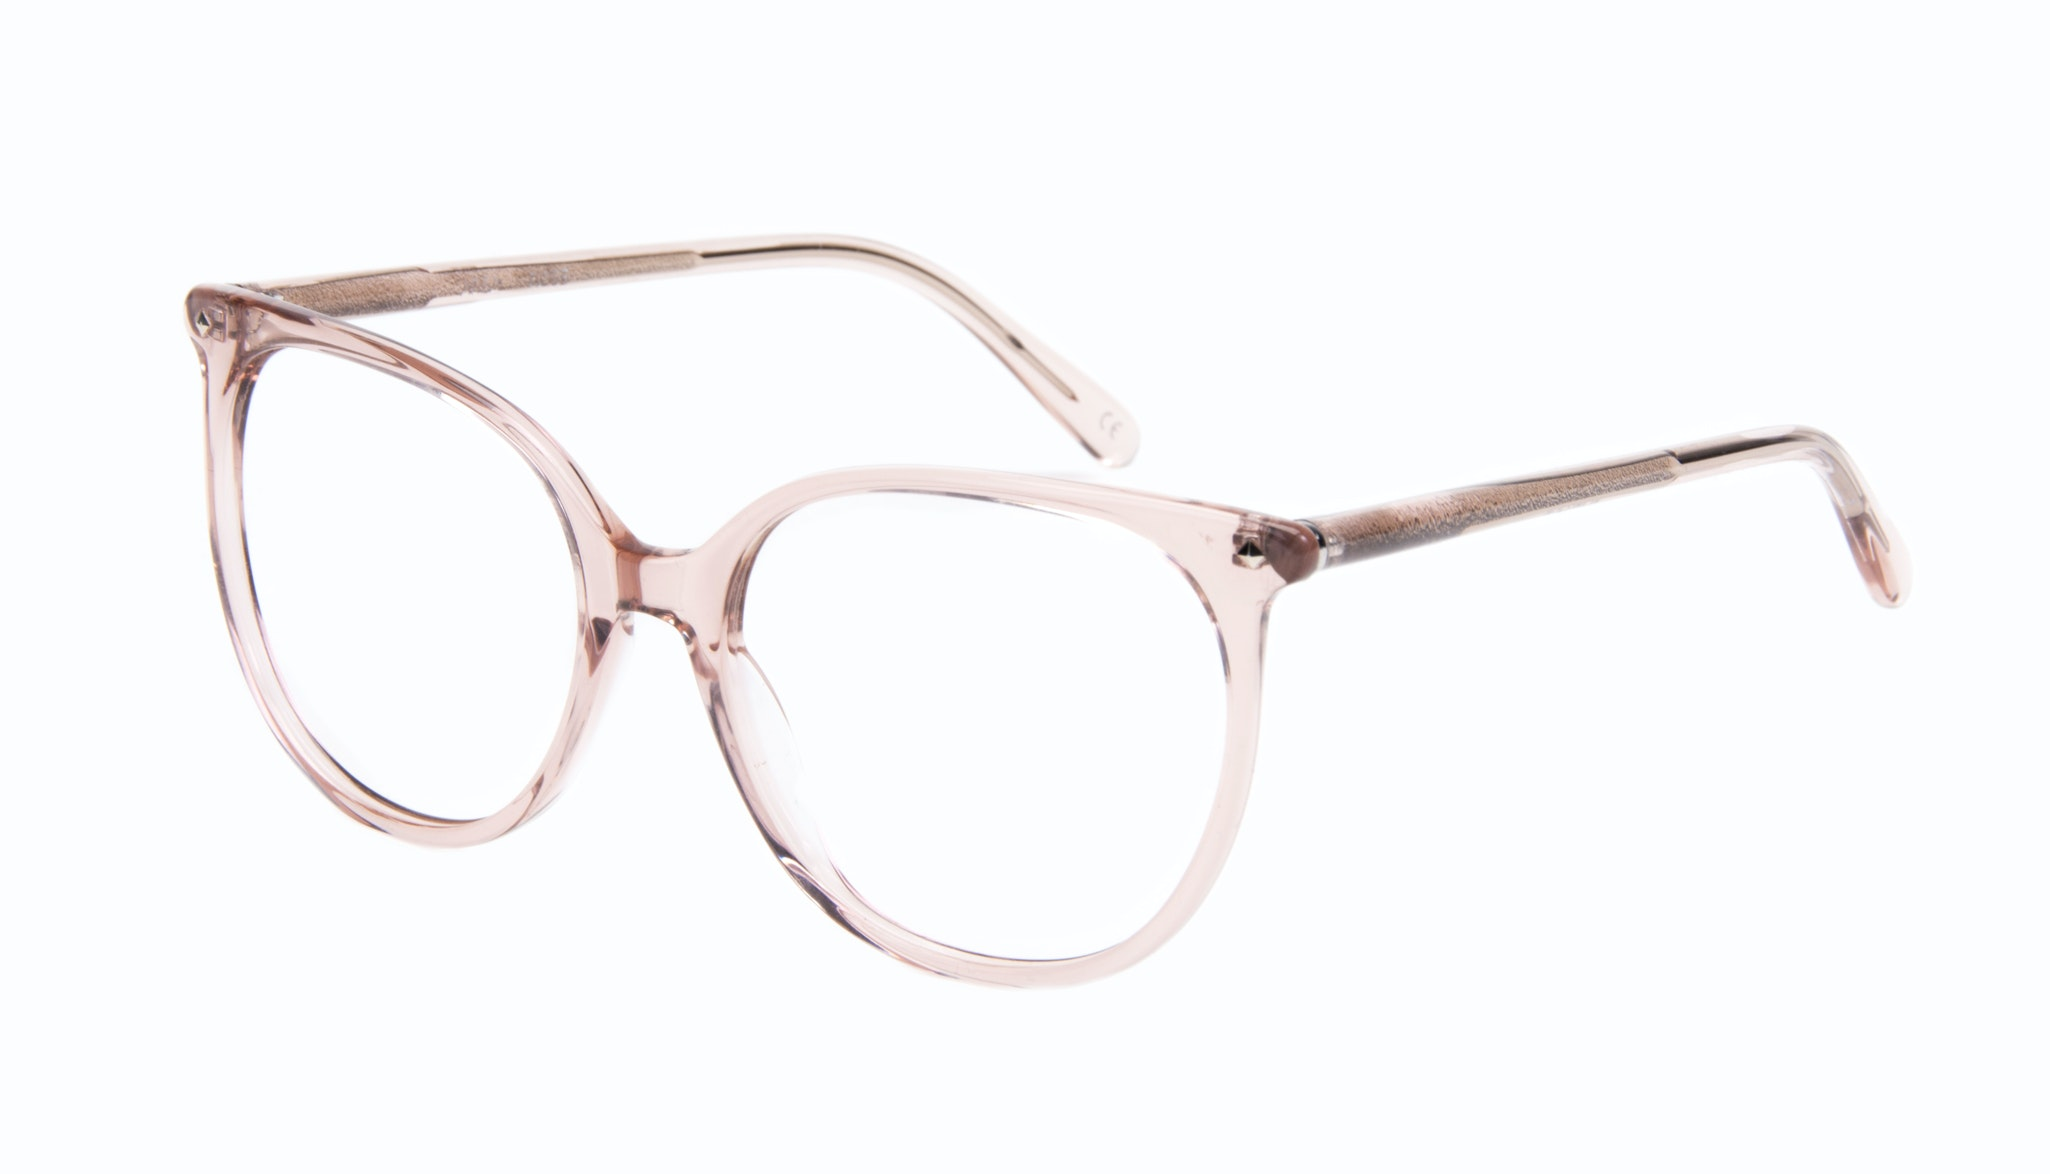 Affordable Fashion Glasses Cat Eye Square Eyeglasses Women Area Rose Tilt